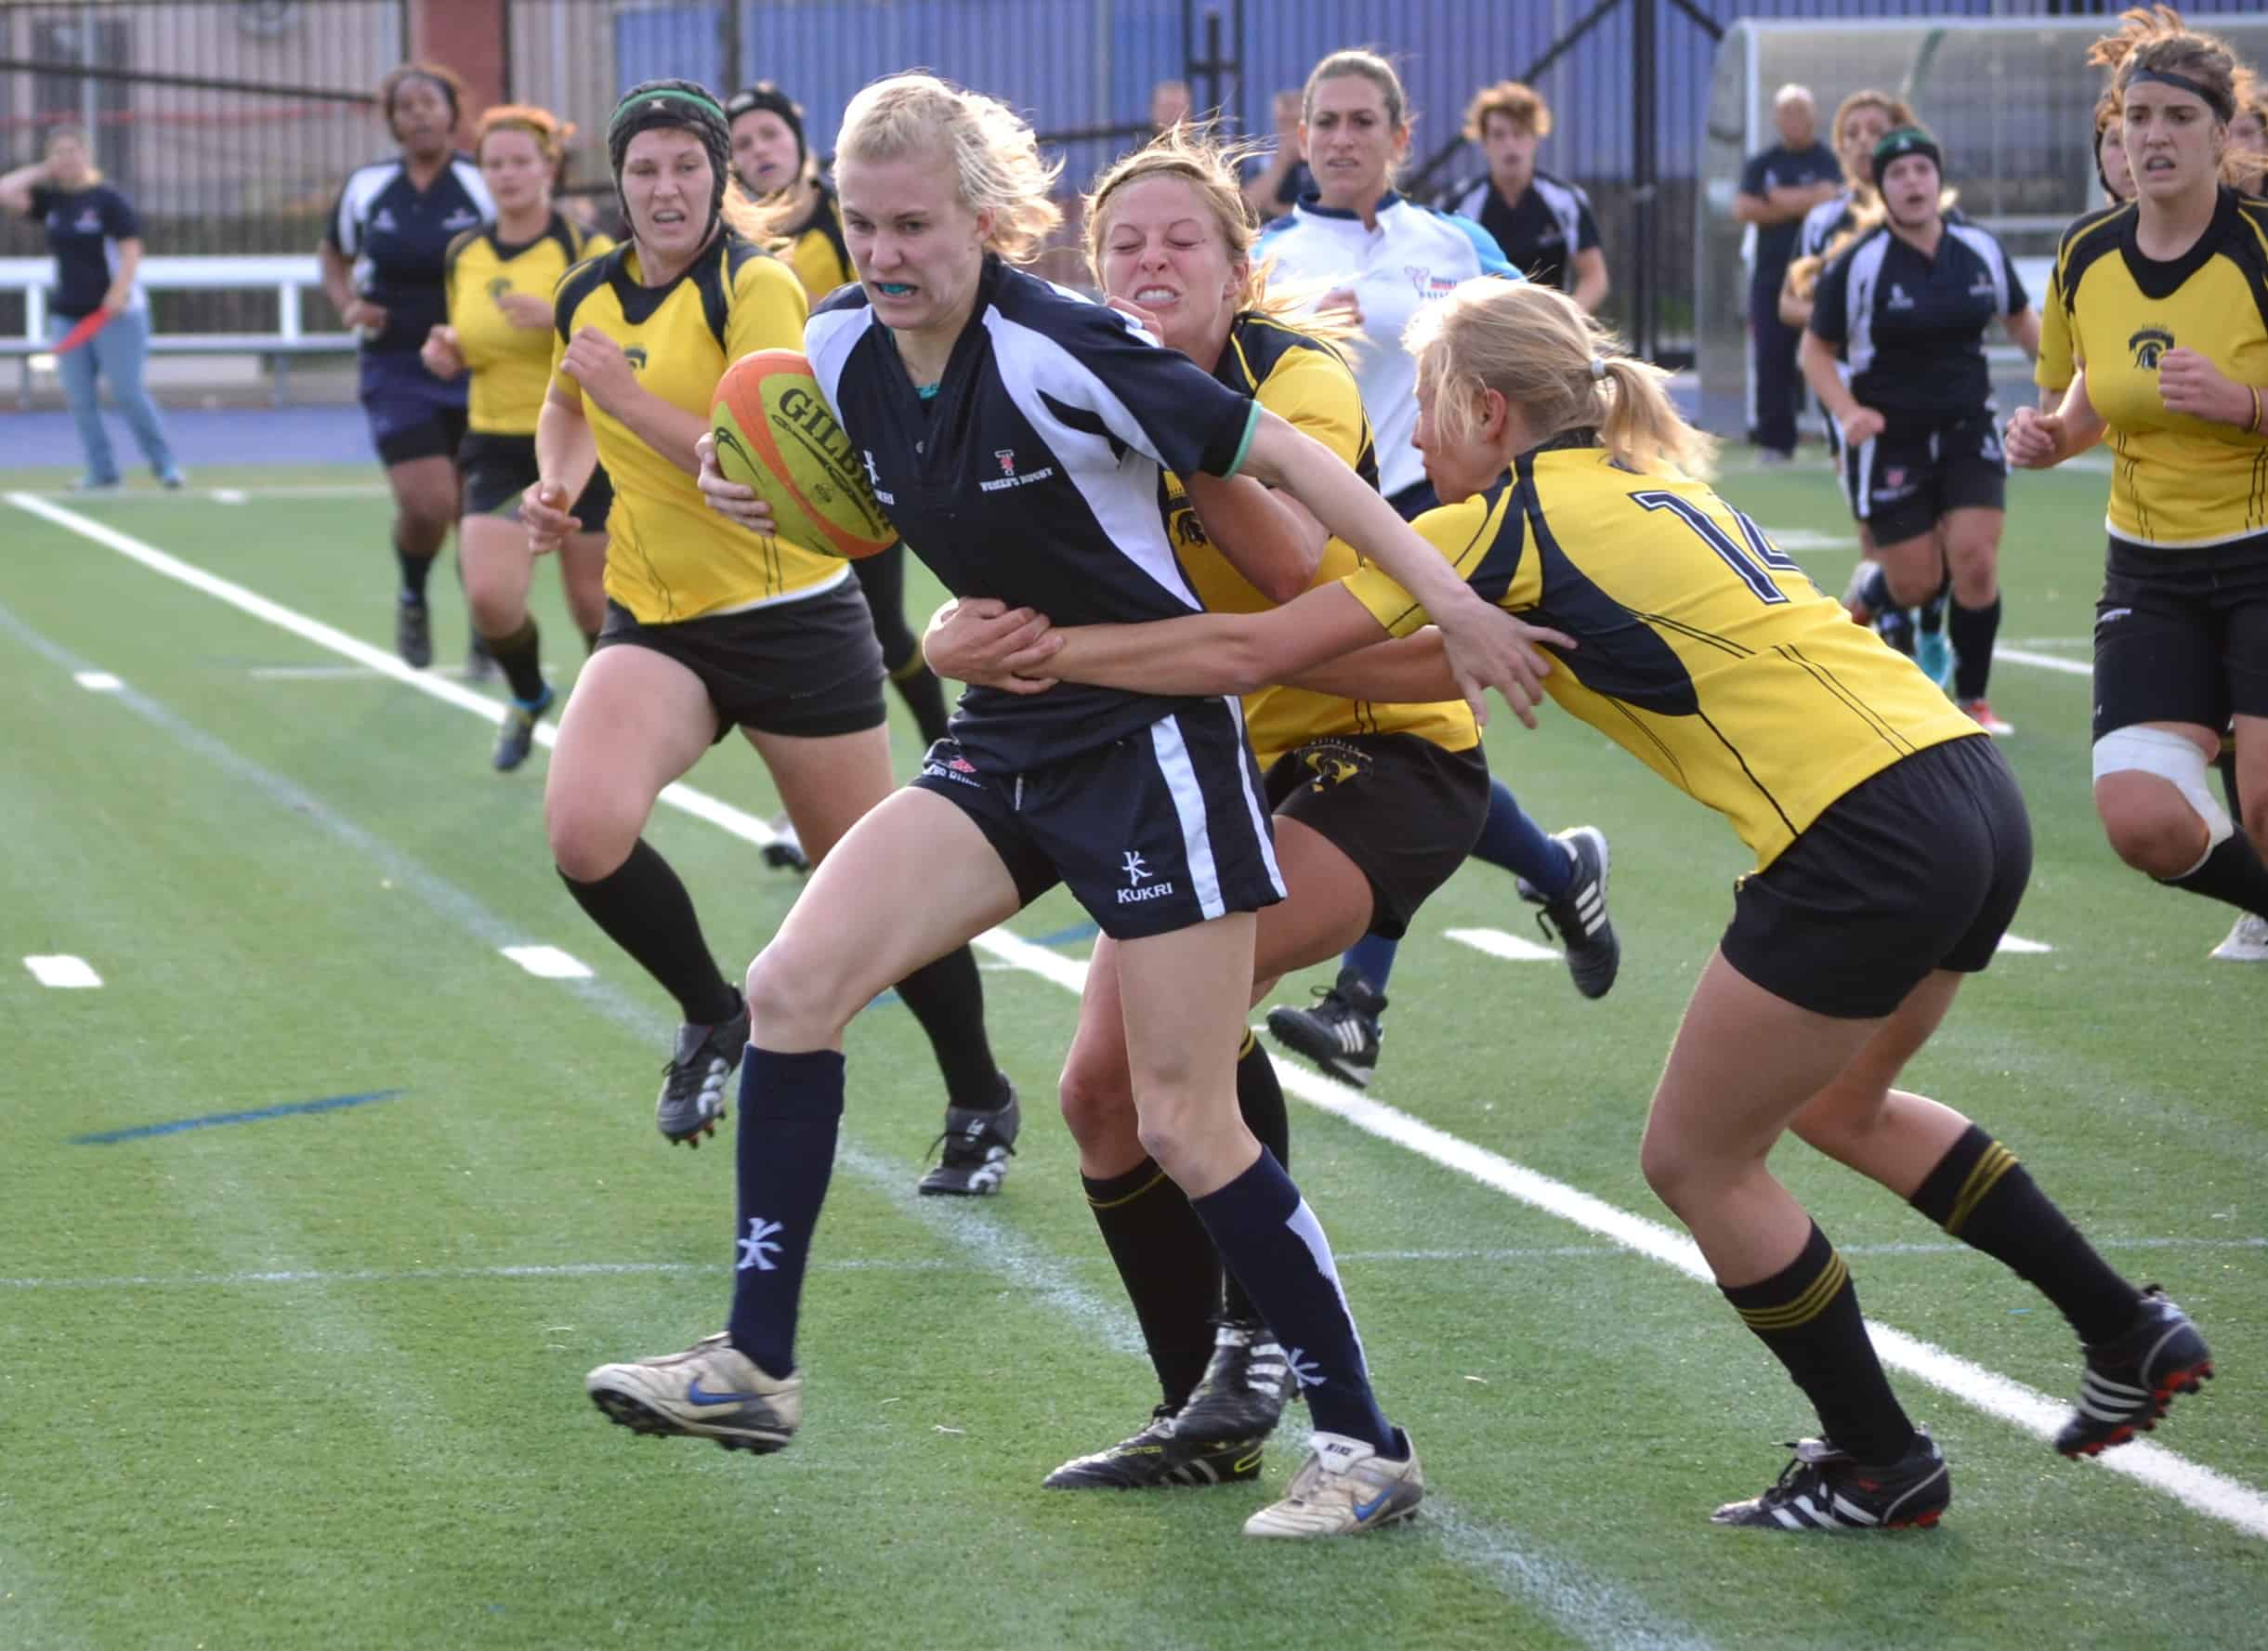 Rugby player Karla Telidetzki ends her CIS run at Summer Universiade